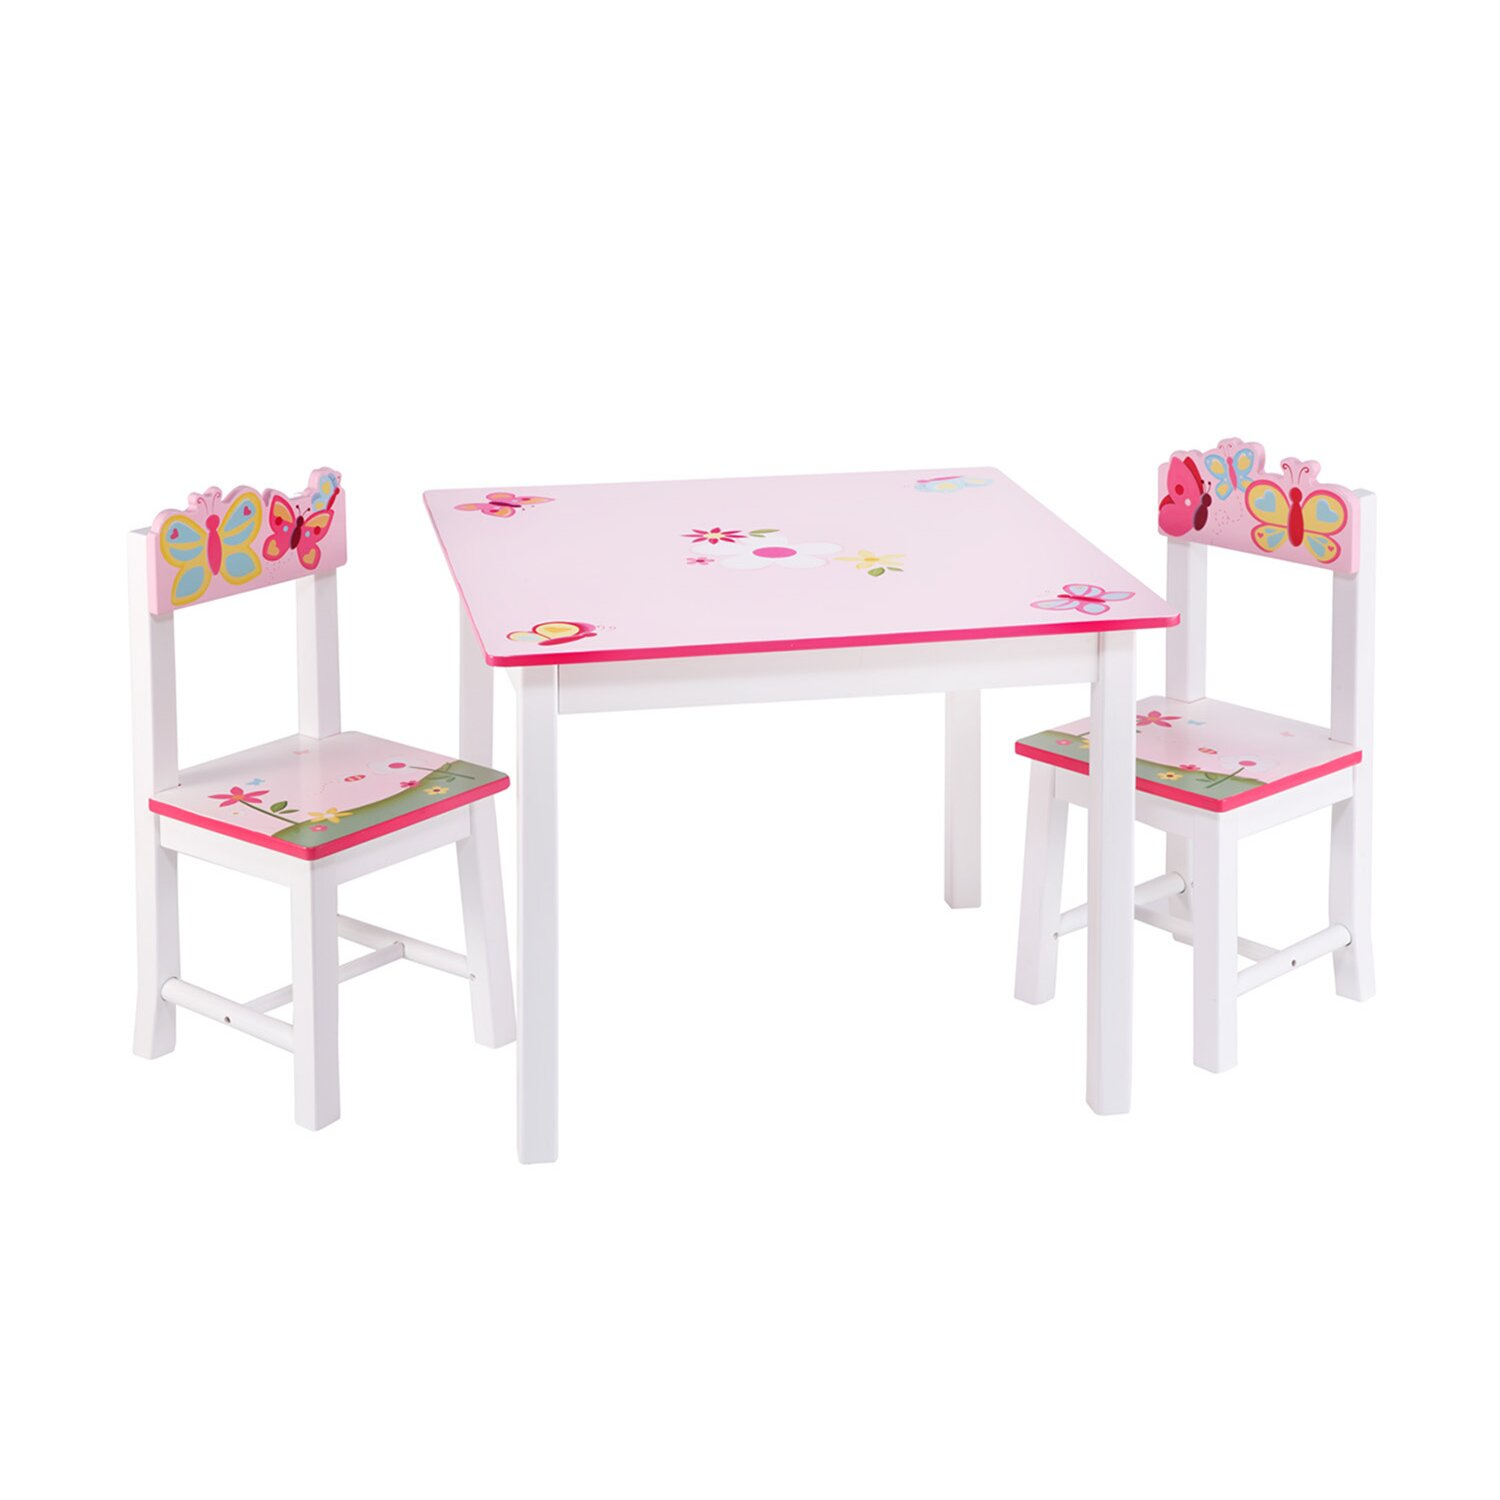 guidecraft butterfly buddies kids 3 piece table and chairs set reviews wayfair. Black Bedroom Furniture Sets. Home Design Ideas